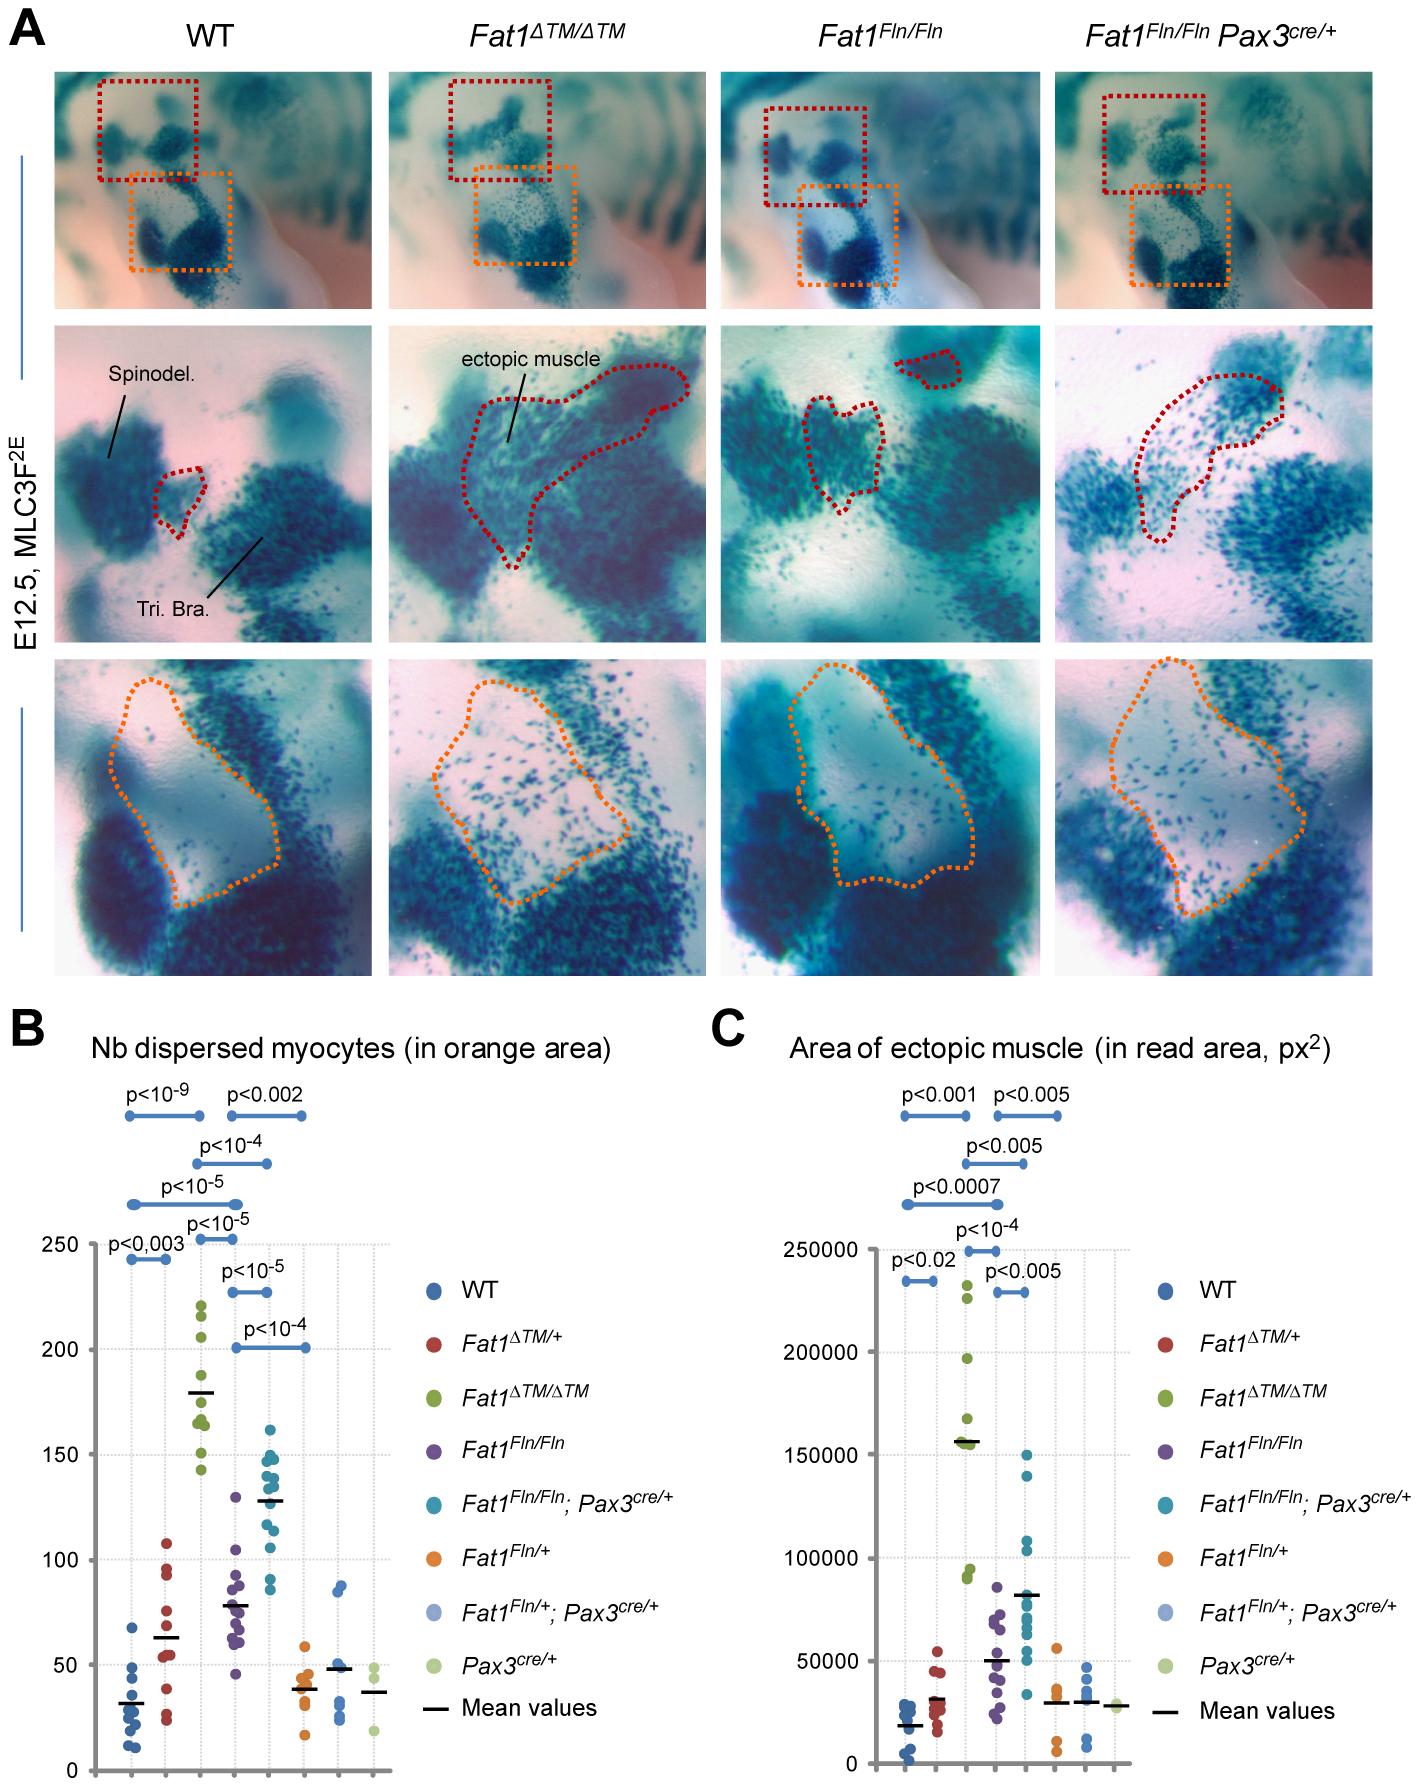 Ablation of <i>Fat1</i> in premigratory myoblasts using <i>Pax3-cre</i> partially reproduces the muscle migration/shape abnormalities of the constitutive knockout.